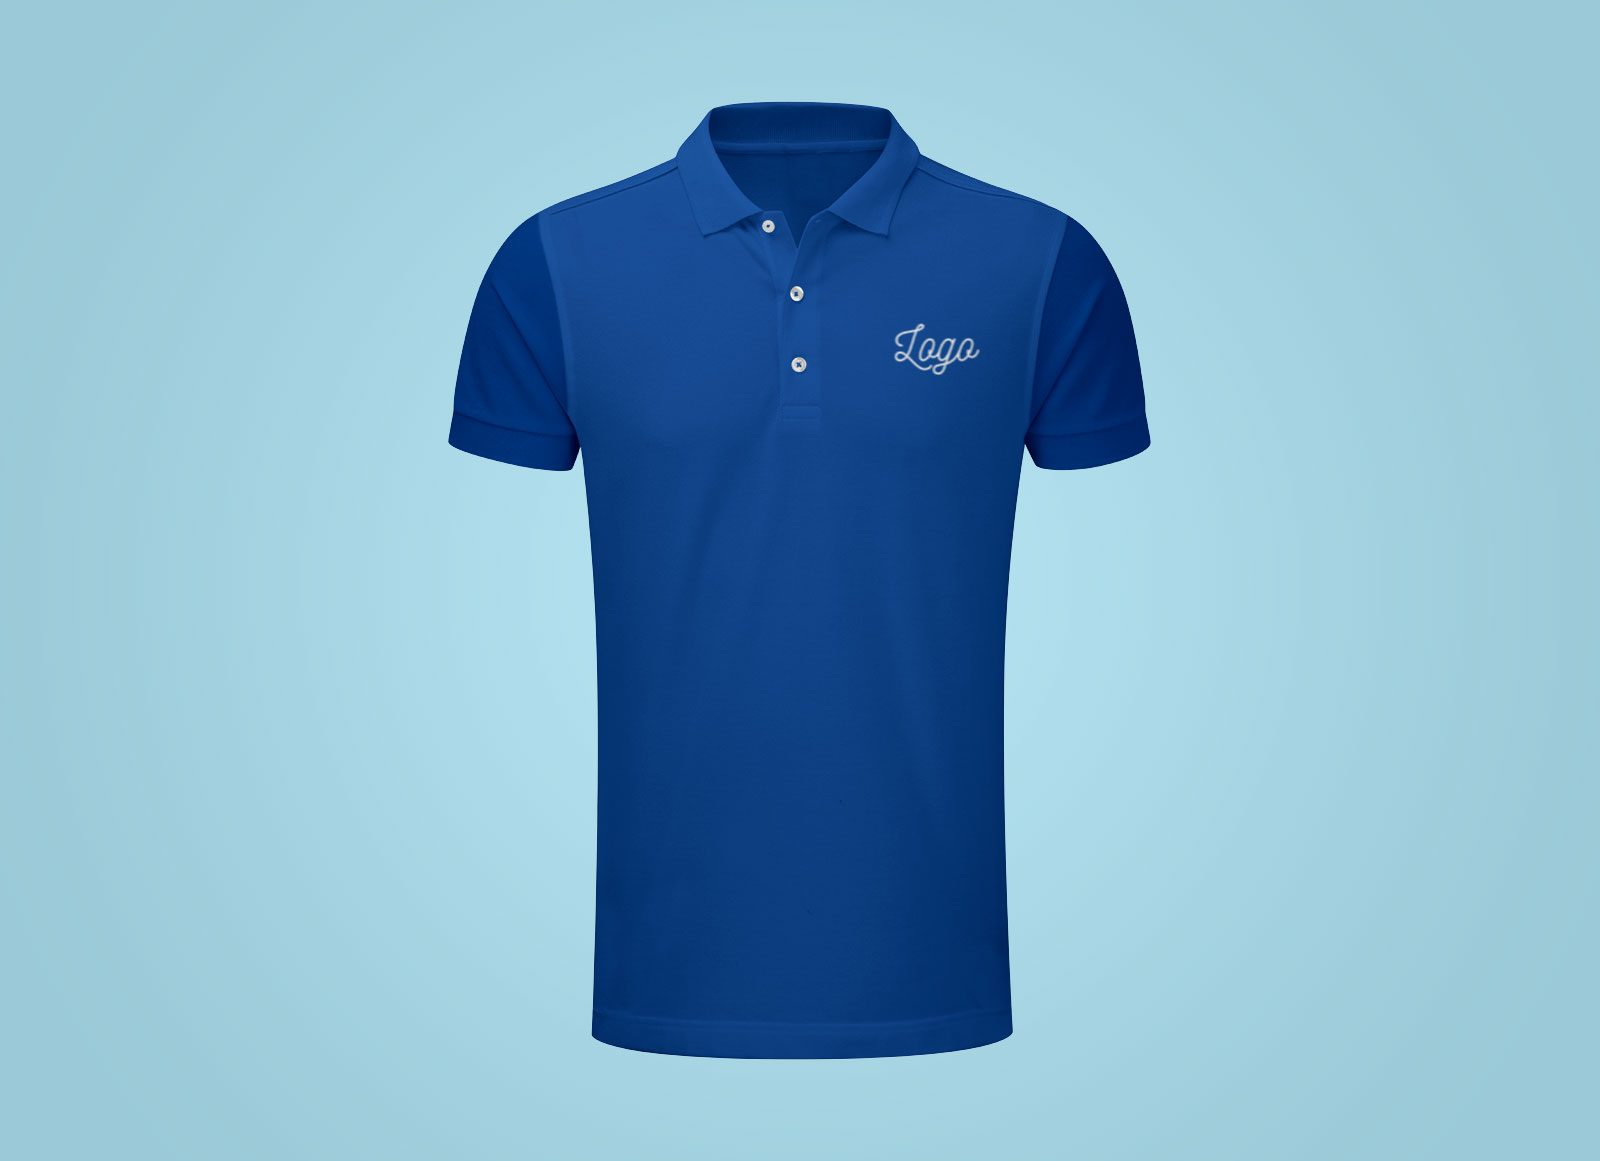 Free fully customizable half sleeves polo t shirt mockup for Free polo shirt mockup